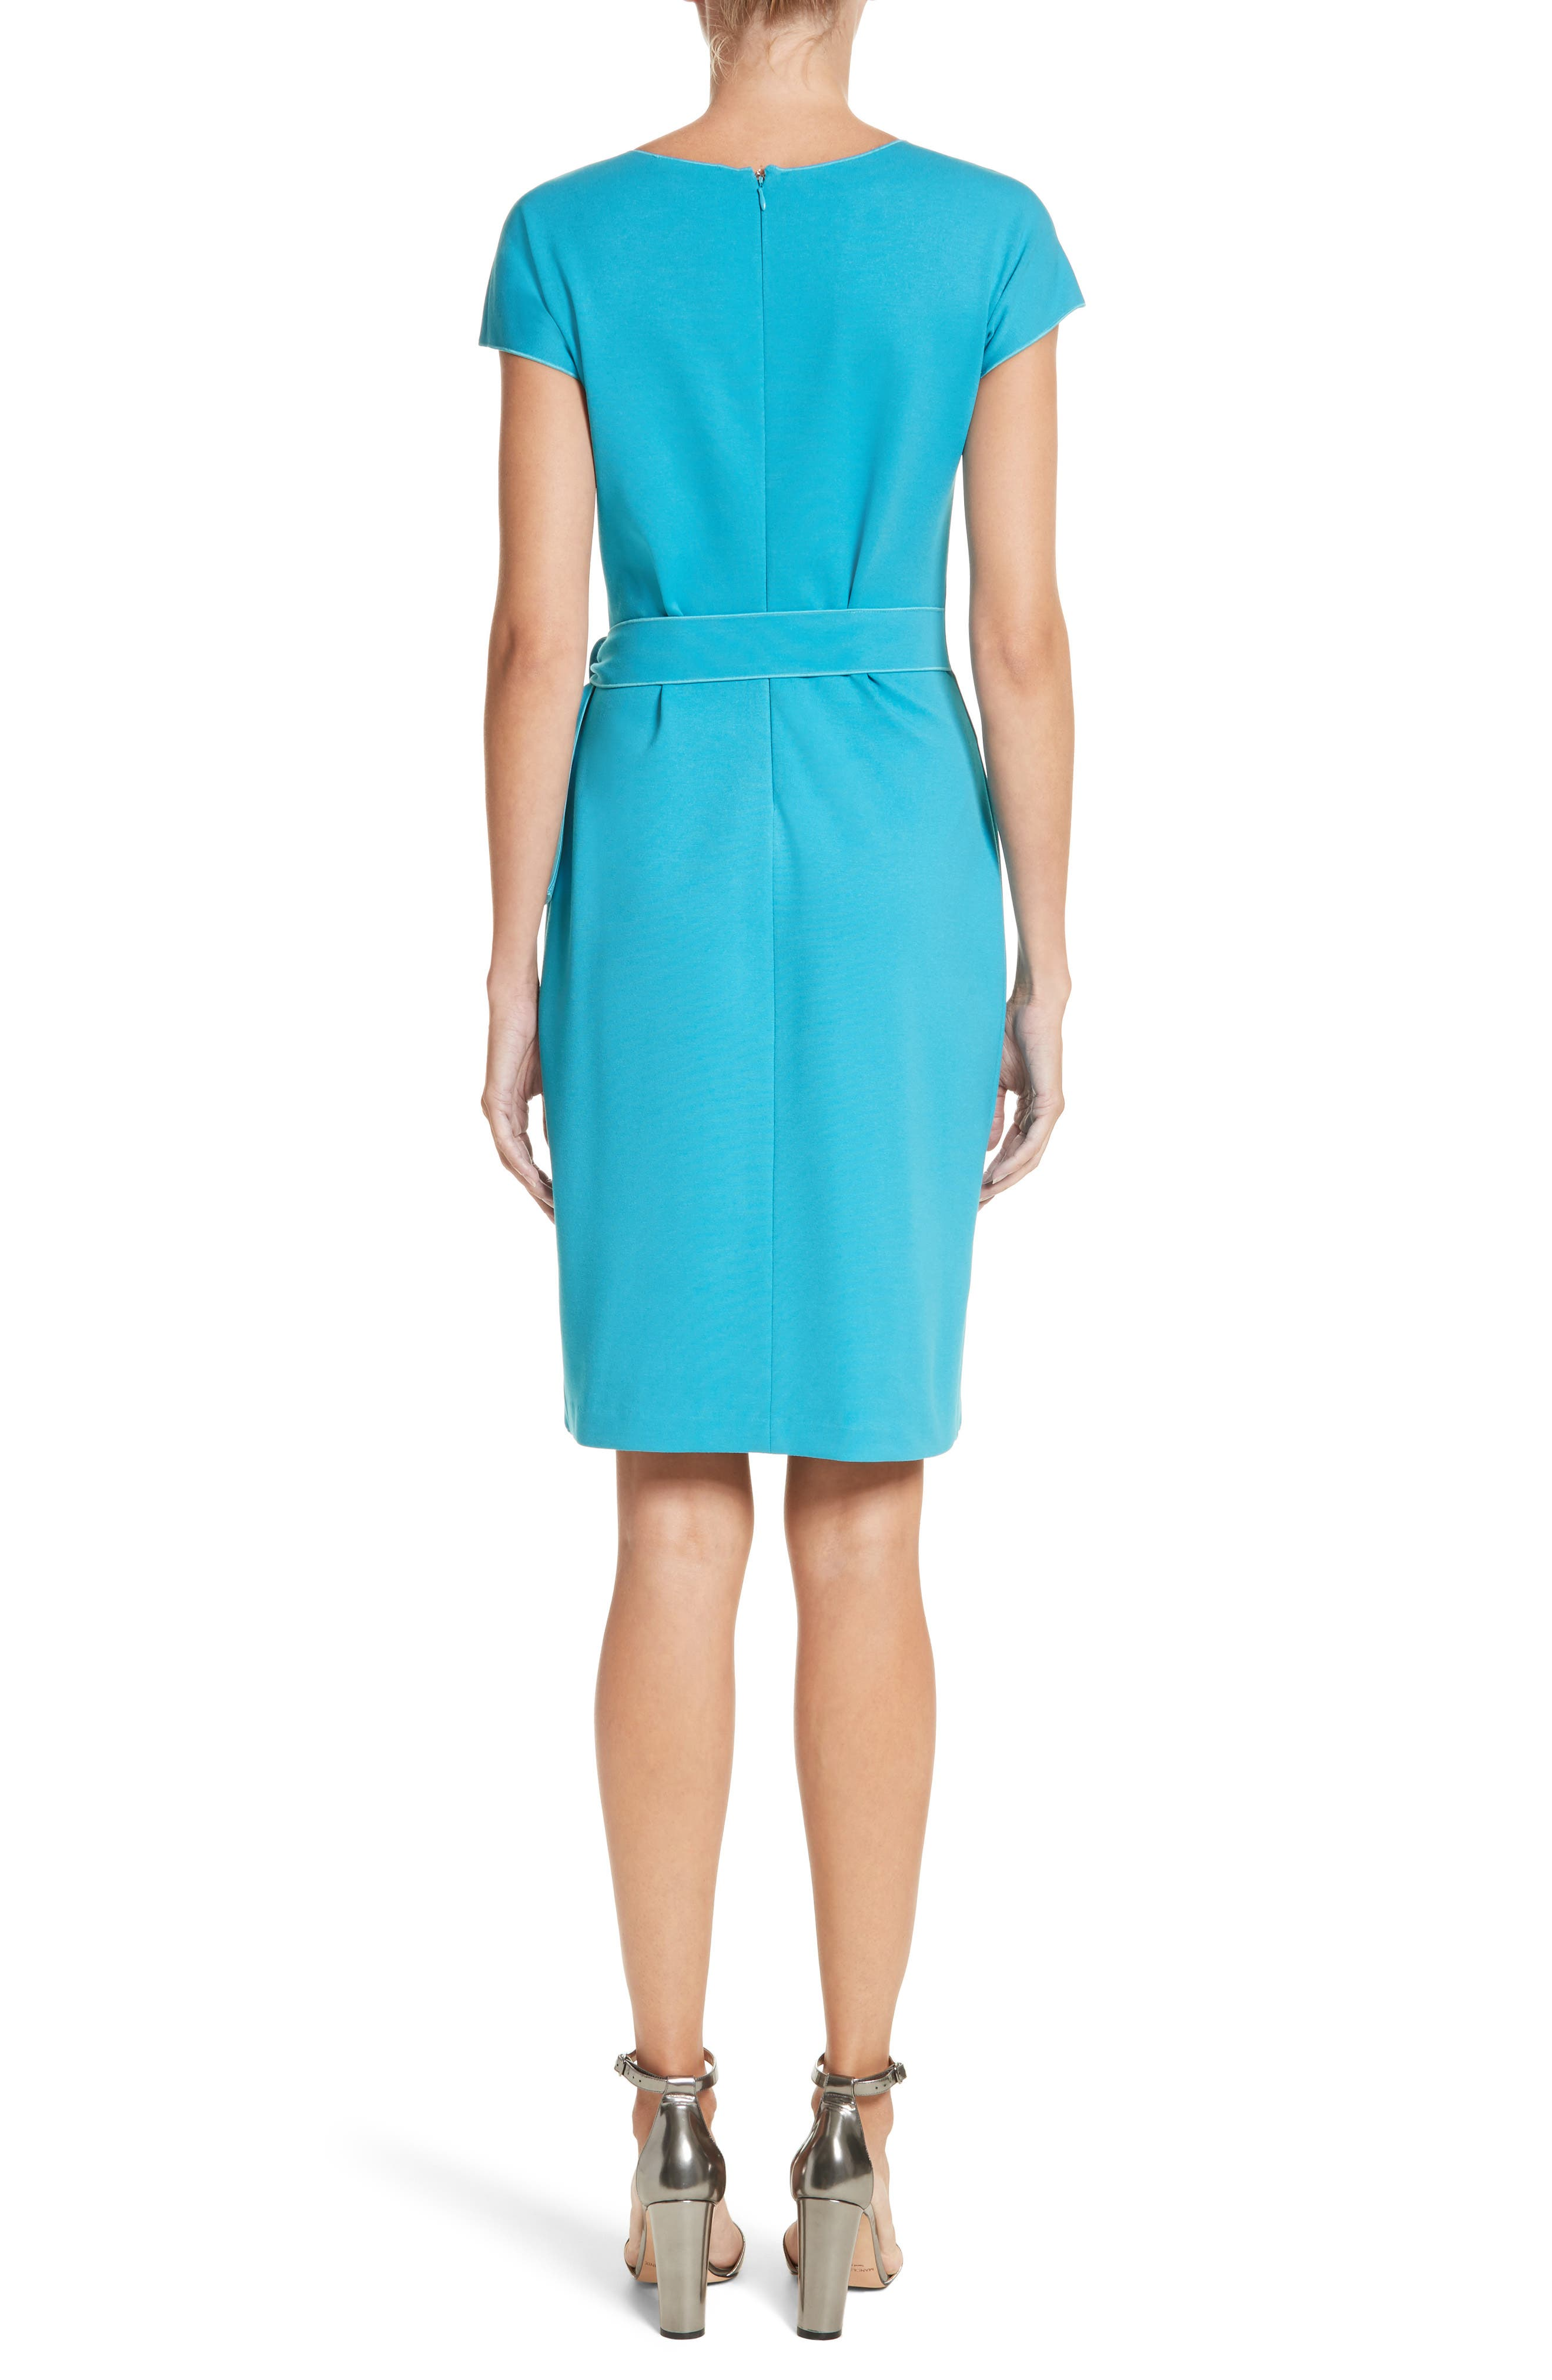 Knotted Wrap Skirt Dress,                             Alternate thumbnail 2, color,                             Solid Turquoise/ Aqua